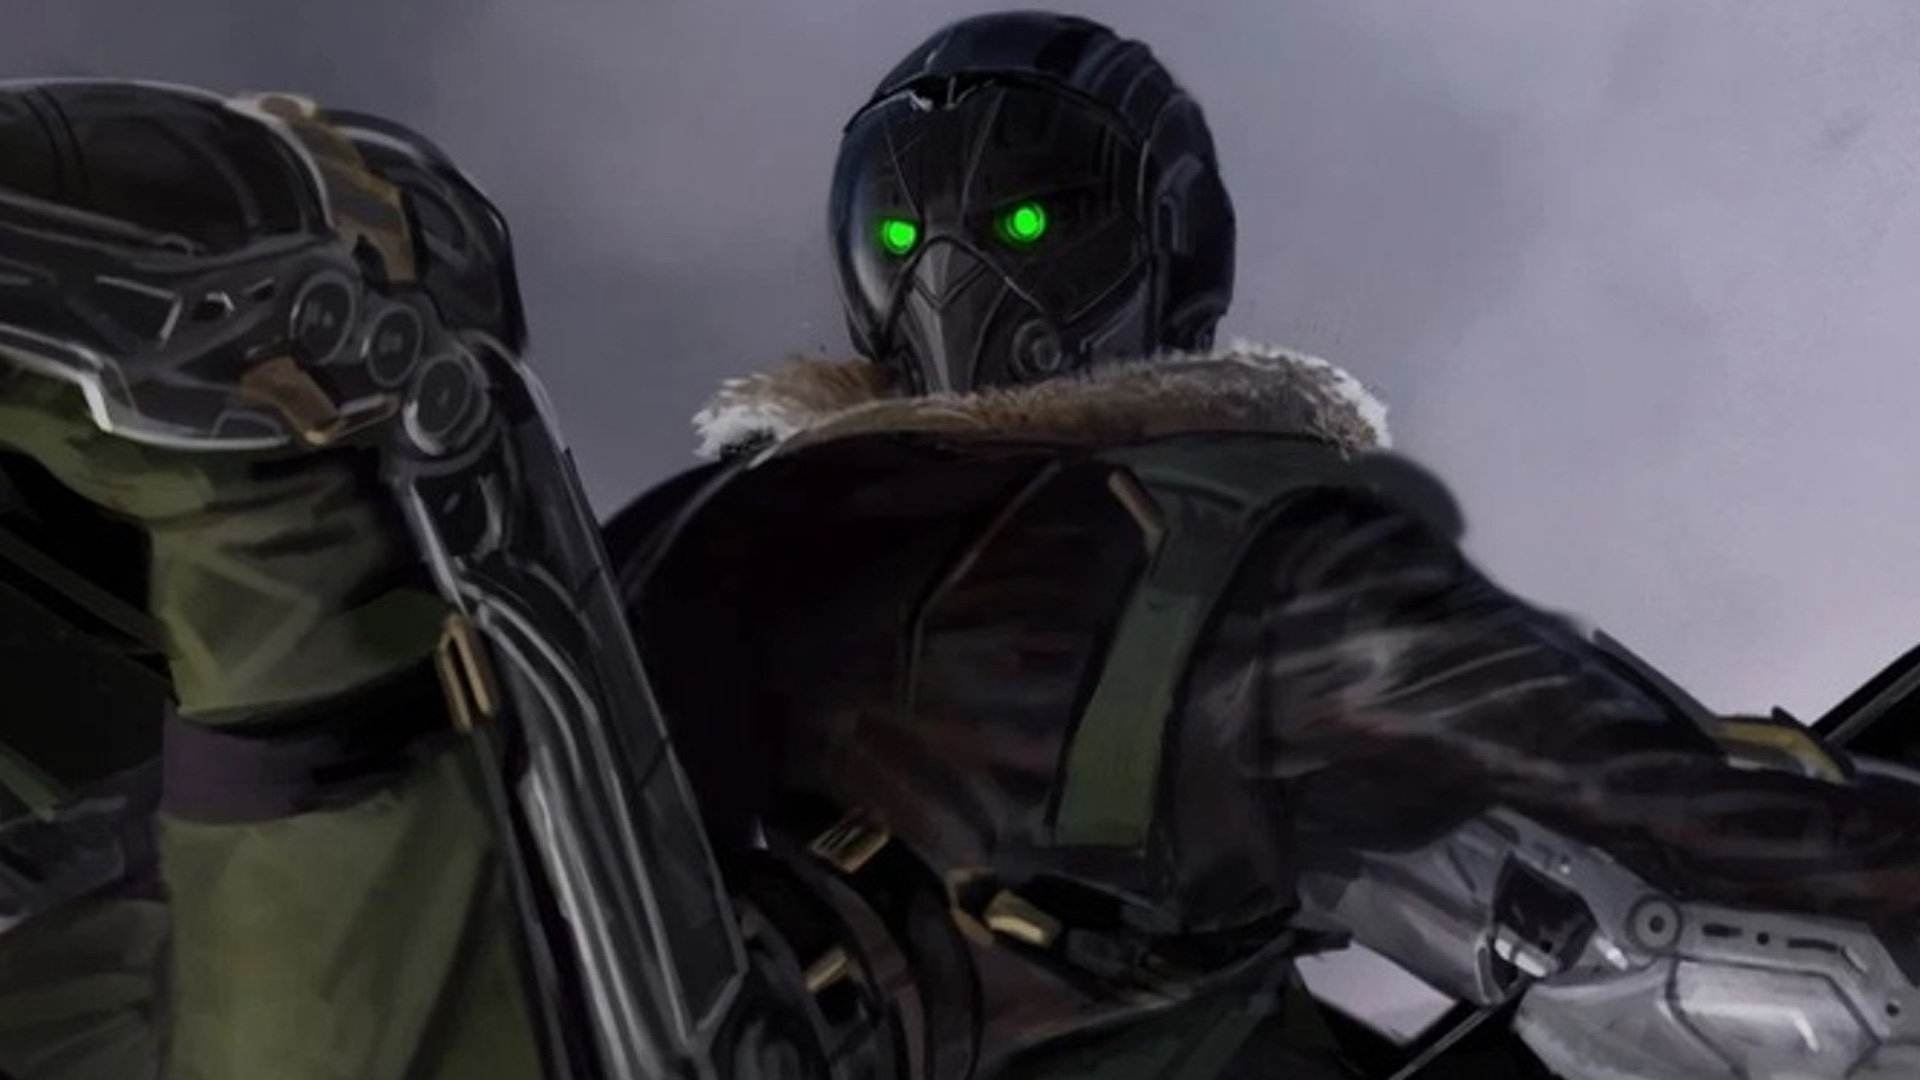 Spider Man Homecoming Concept Art Gives Us A New Look At The